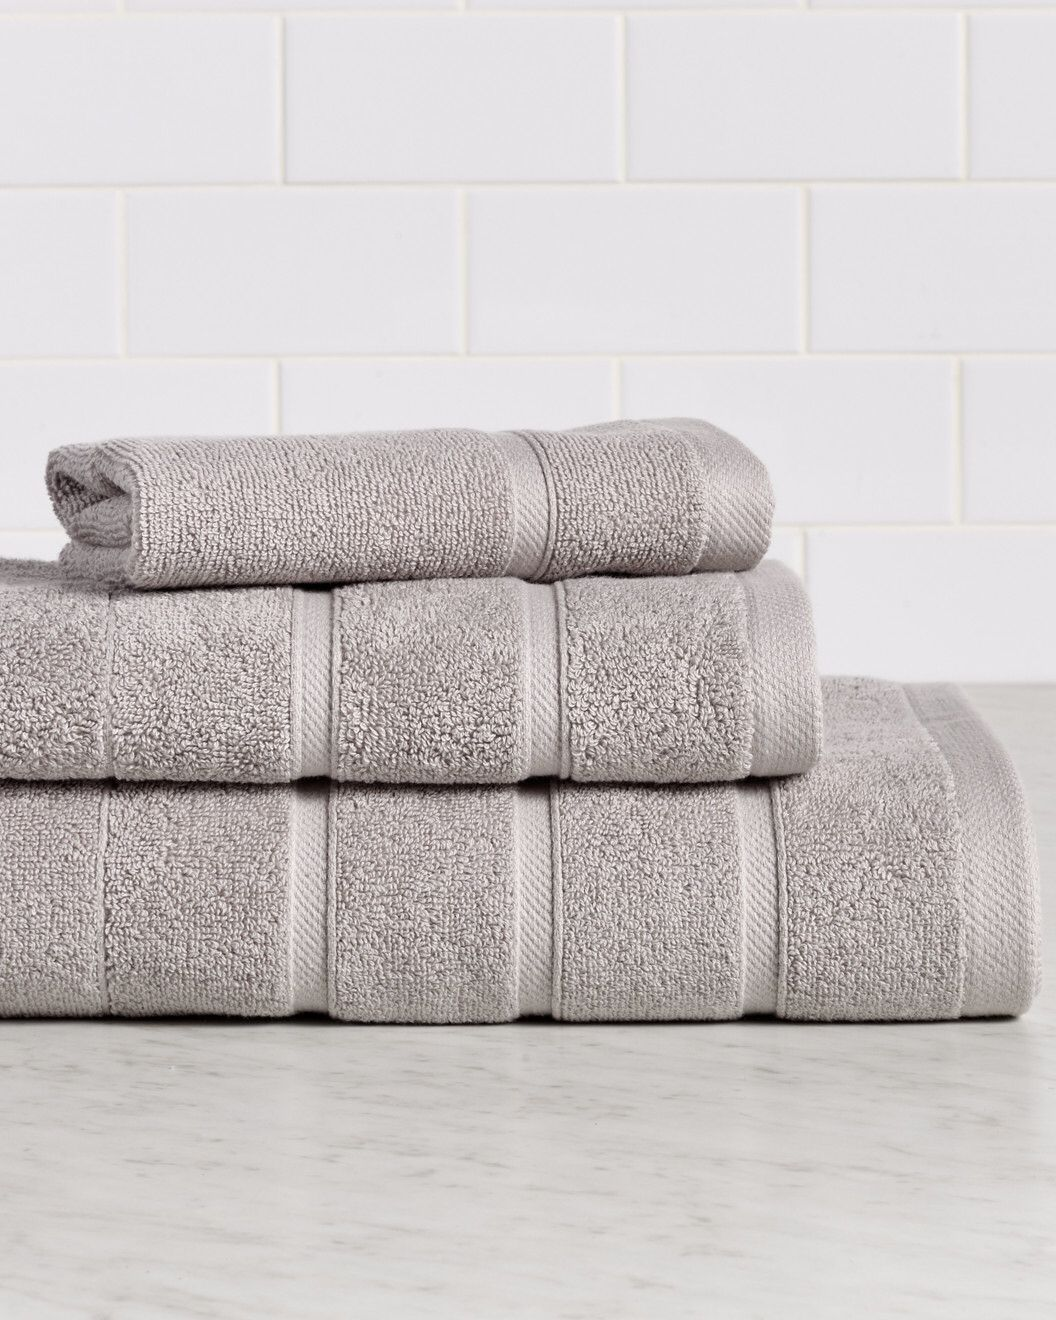 You need to see this Frette Lanes 3pc Towel Set on Rue La La.  Get in and shop (quickly!): http://www.ruelala.com/boutique/product/98078/26604274?inv=prodlHr&aid=6191